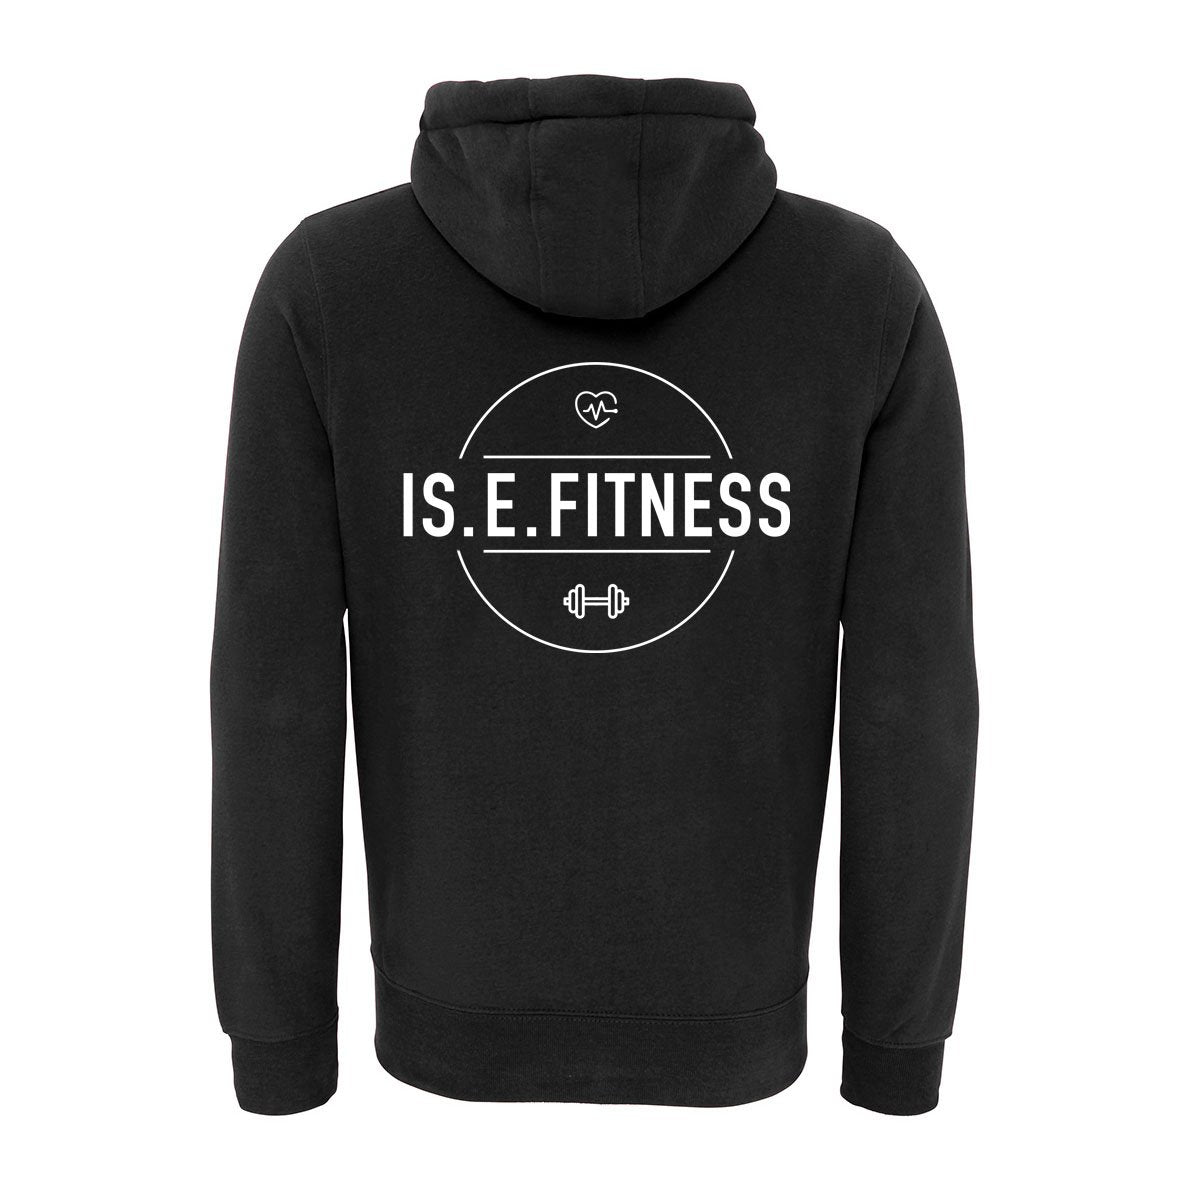 Hoodie - IS.E.FITNESS Fleece Lined Zip Up Hoodie